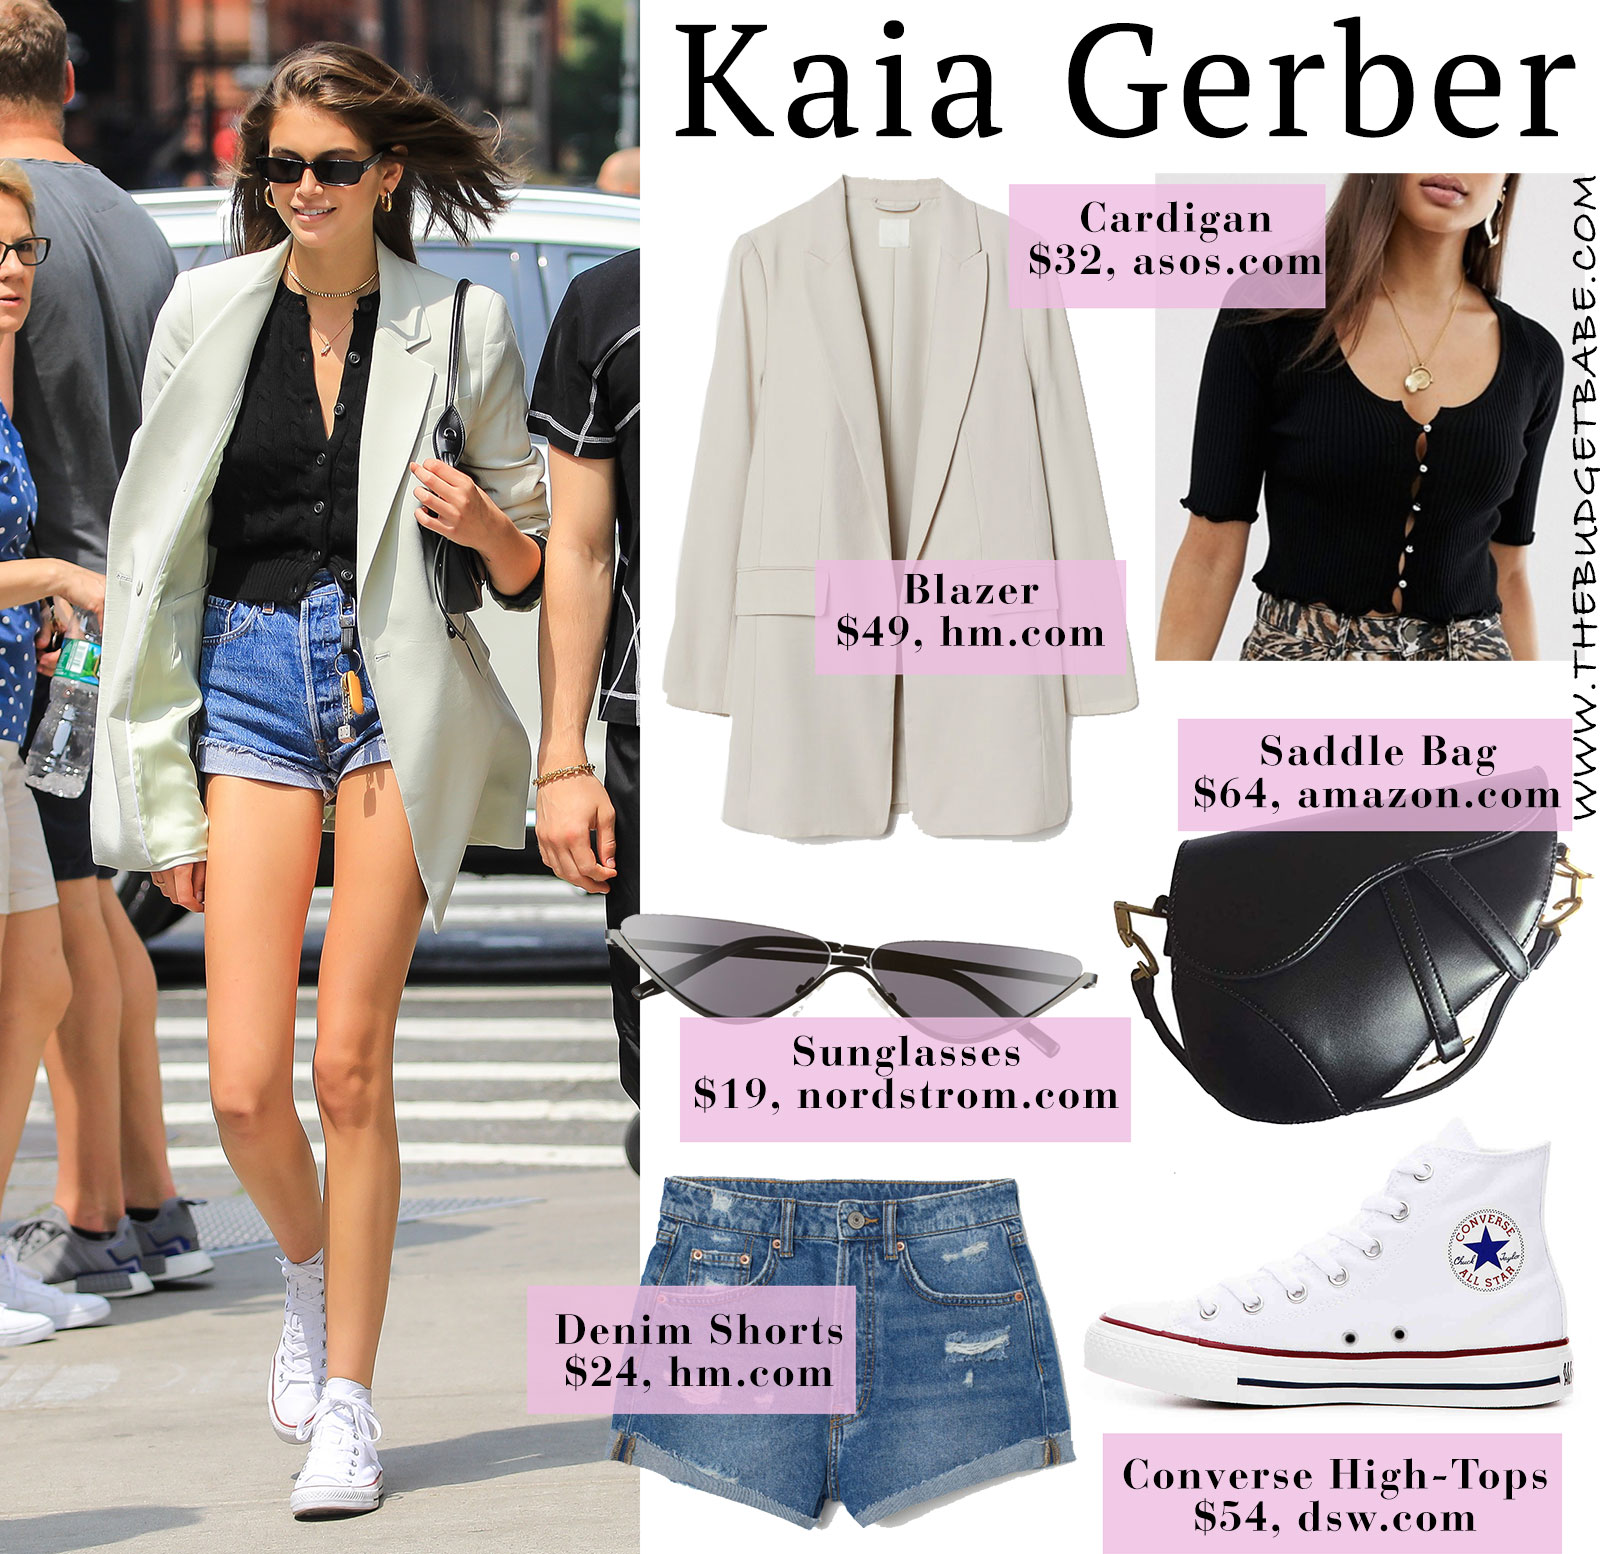 Kaia Gerber inspired streetstyle for summer with tan blazer, Converse and cut-offs